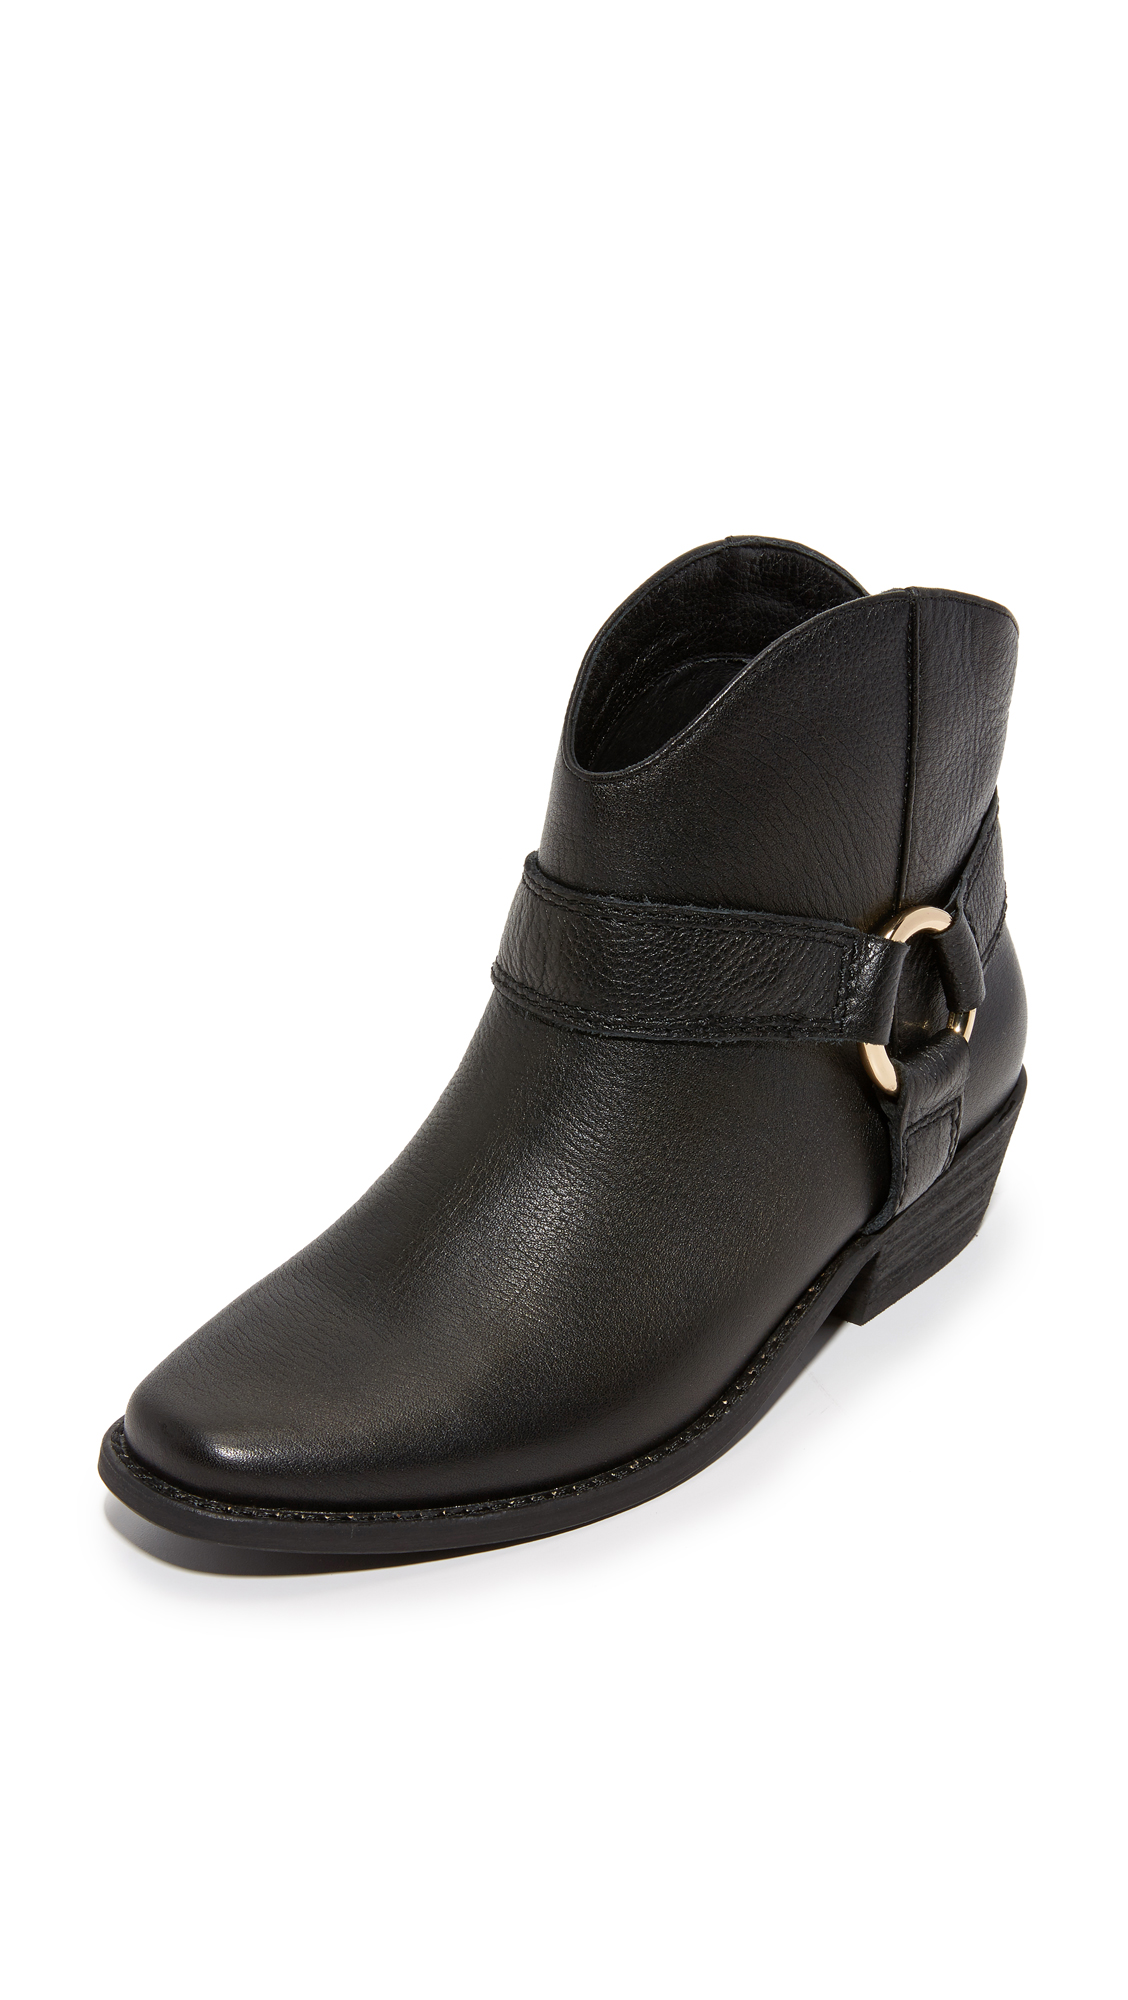 Joie Alinn Booties - Black